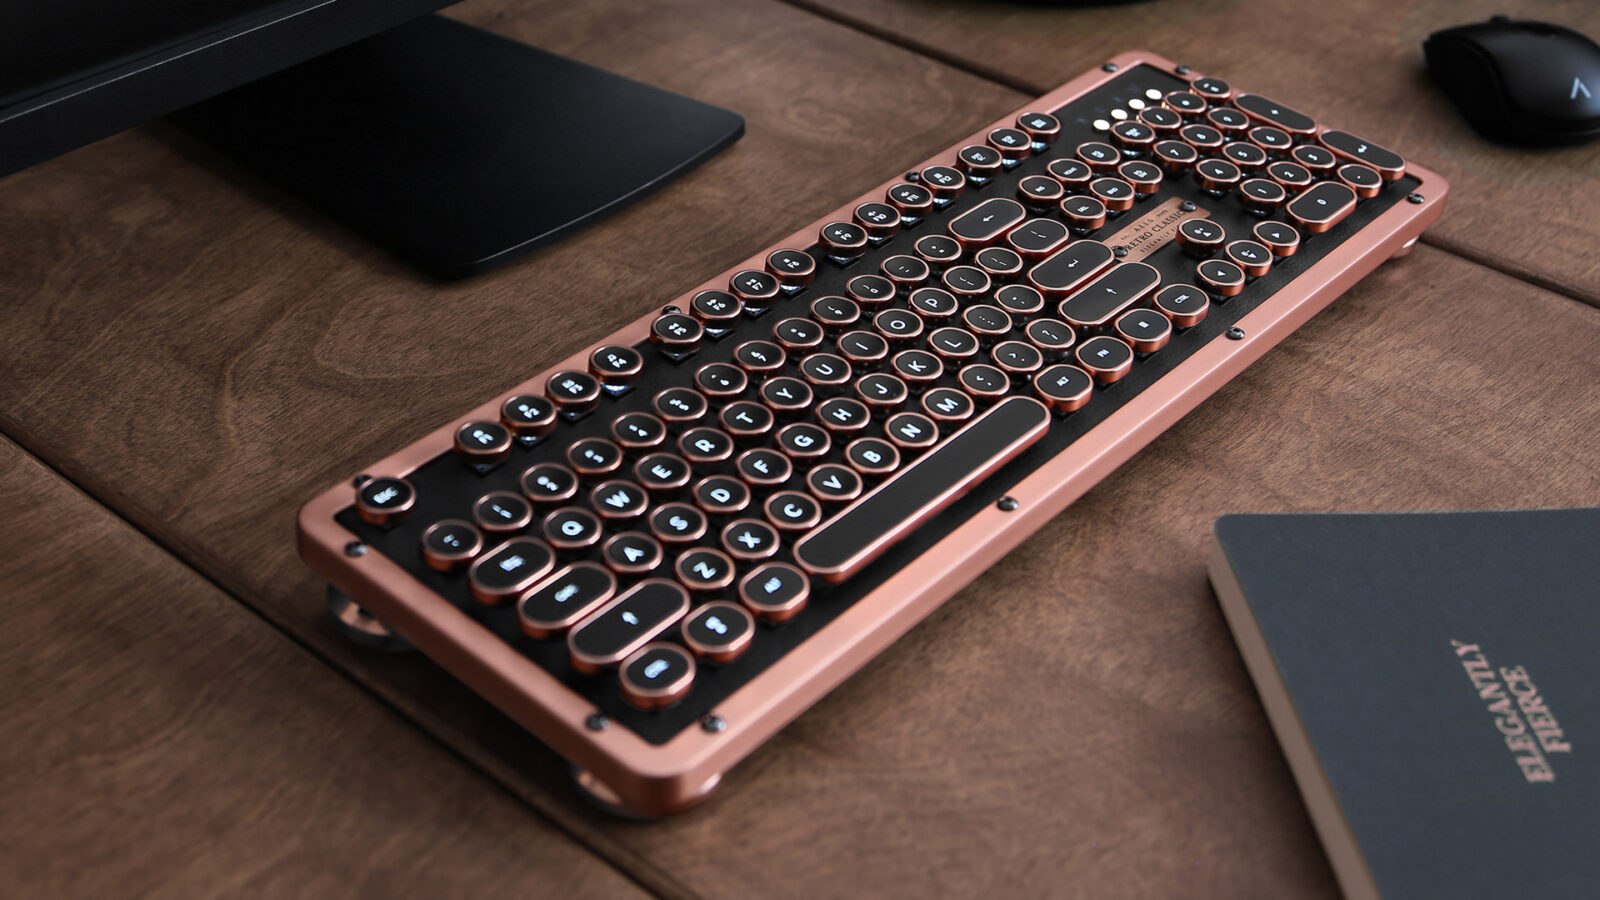 Azio Retro Classic - The Traditional Mechanical Computer Keyboard